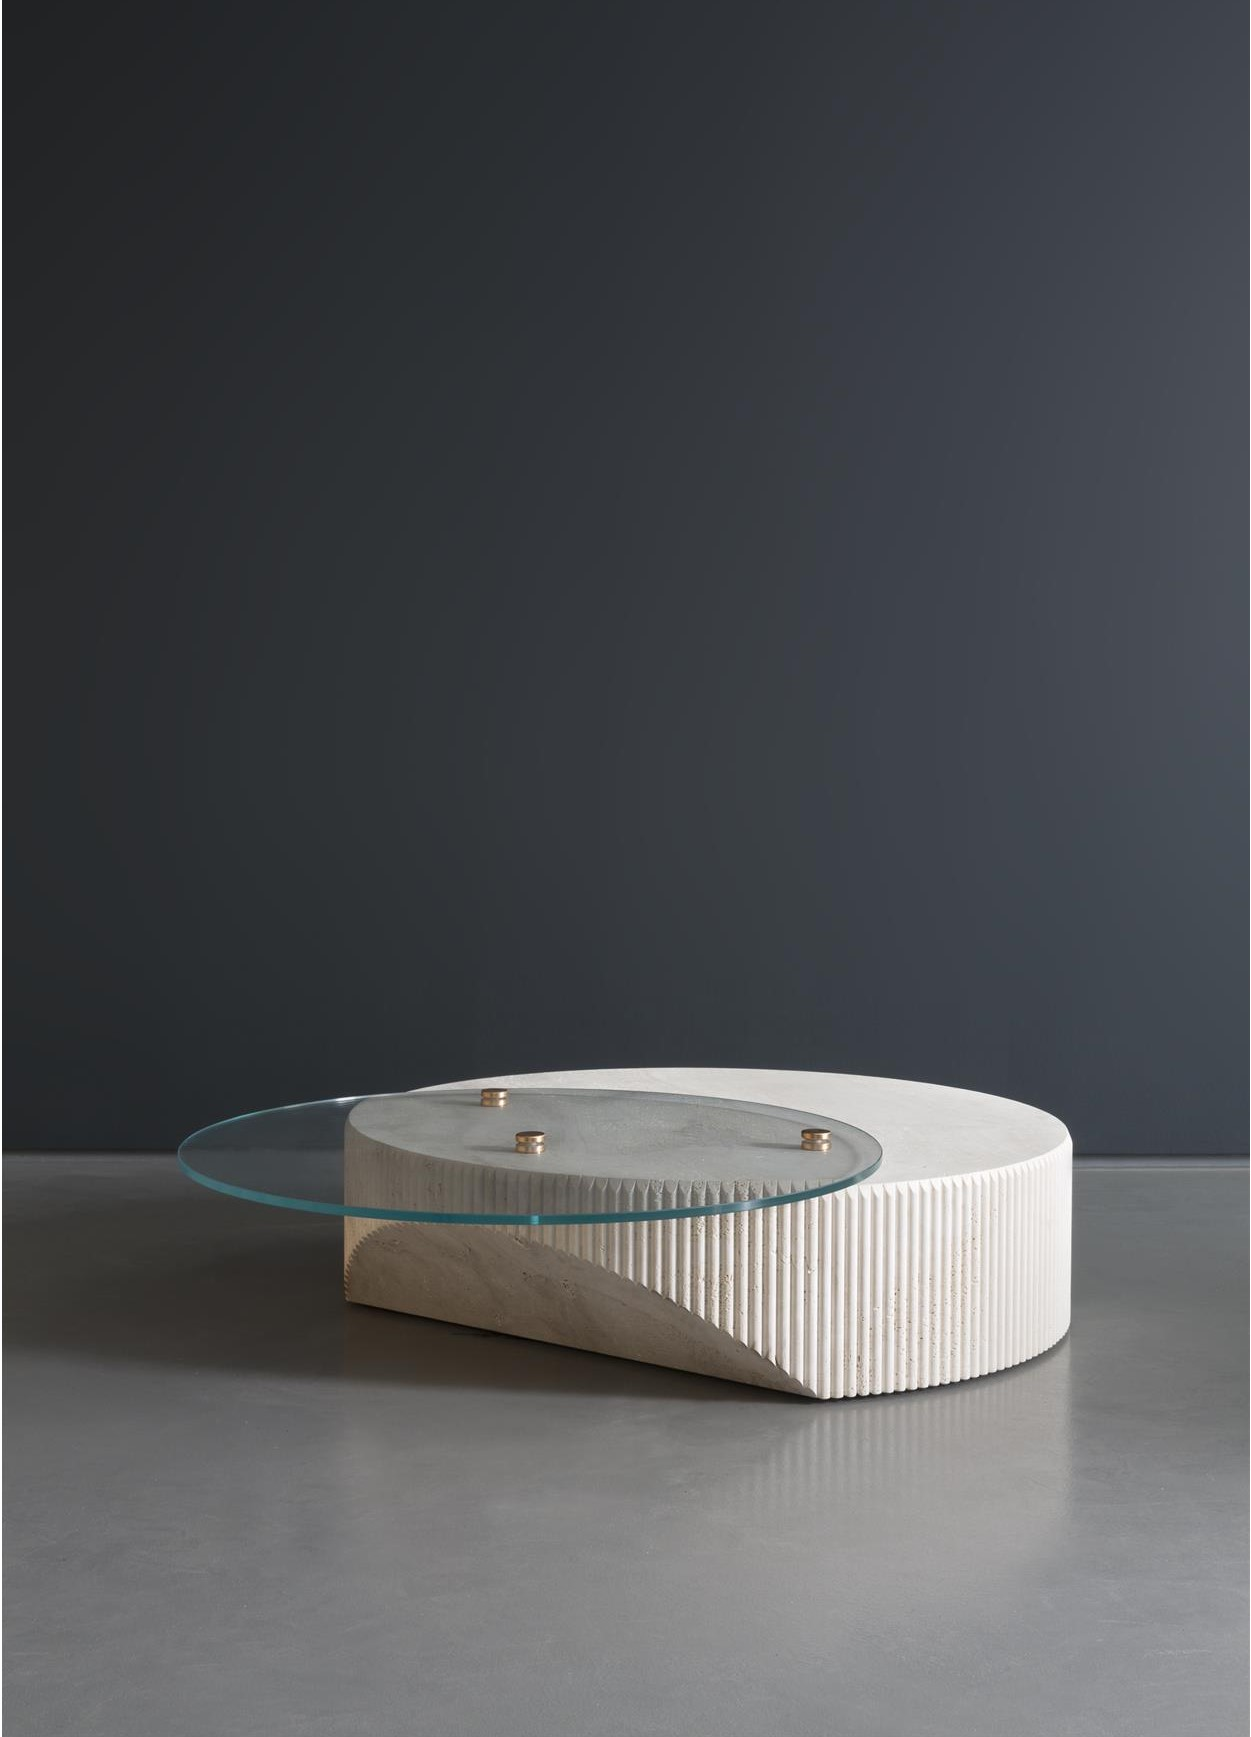 Minimalist Collection Supernova by david/nicolas